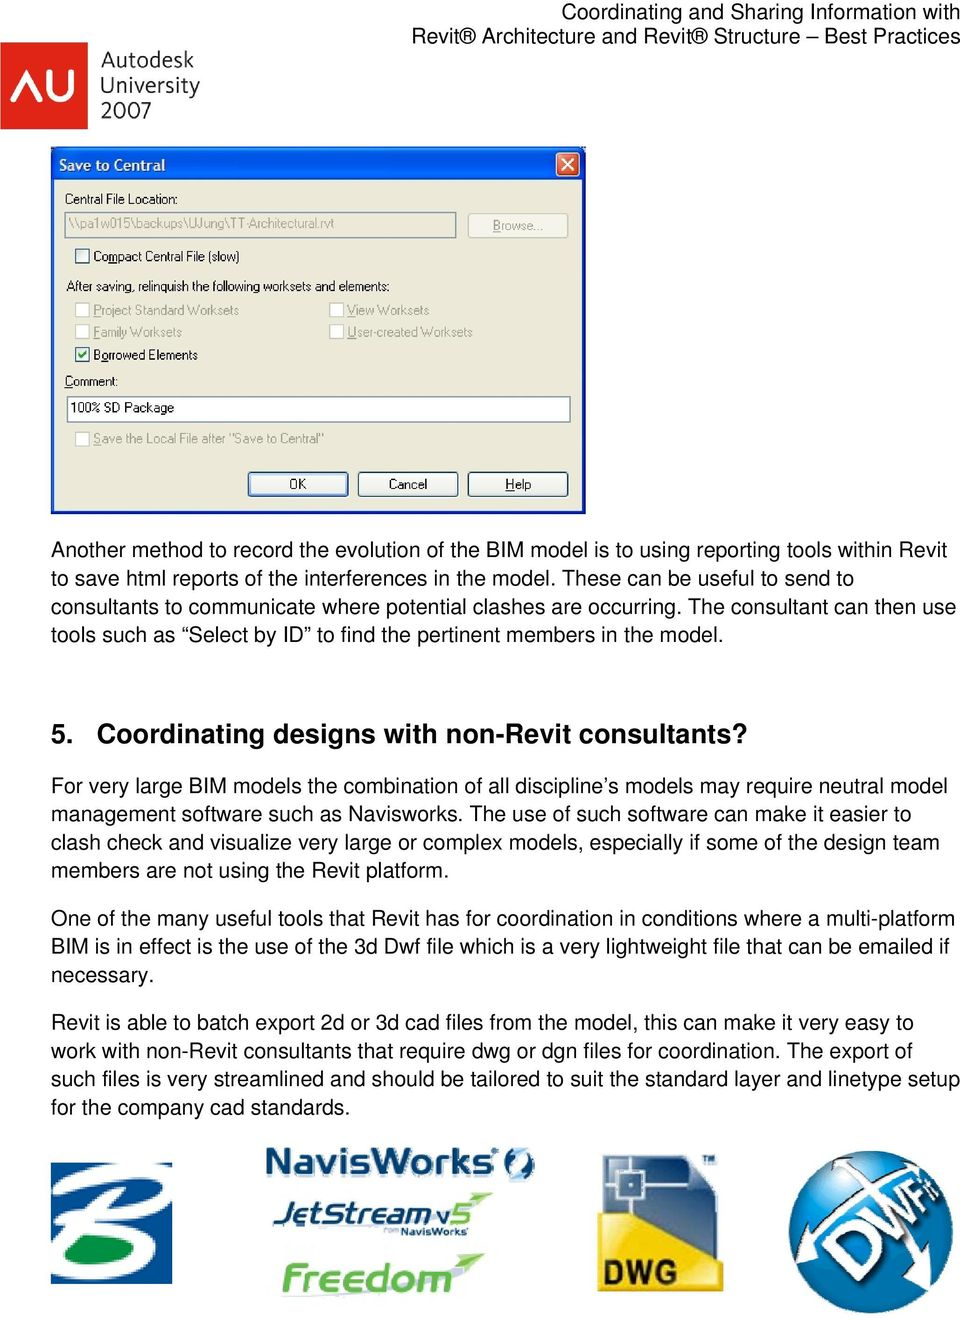 Coordinating and Sharing Information with Revit Architecture and